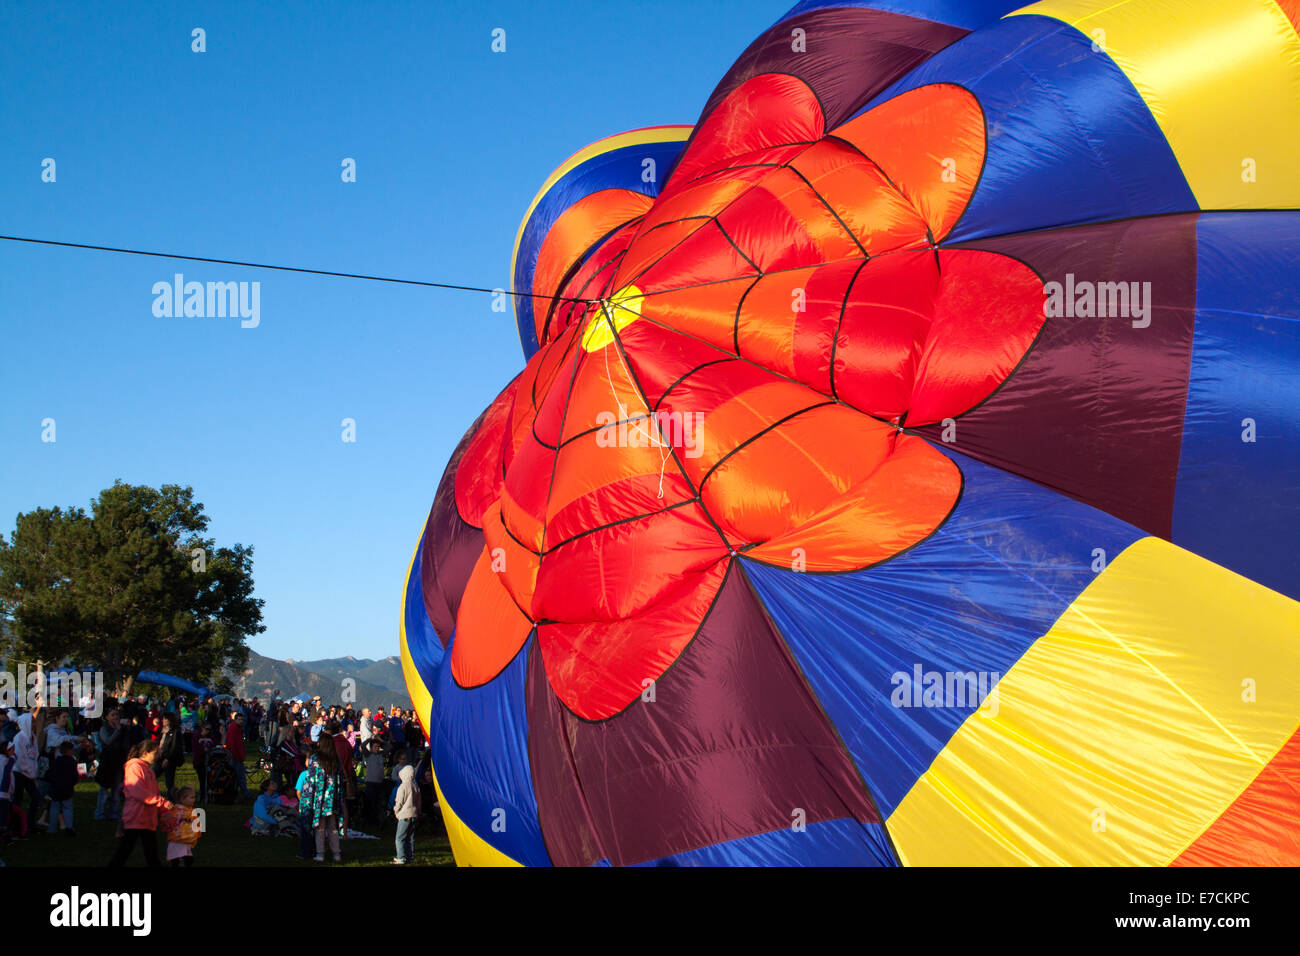 People watch as a colorful hot air balloon is inflated on the last day of the last scheduled Balloon Classic in Colorado Springs Stock Photo